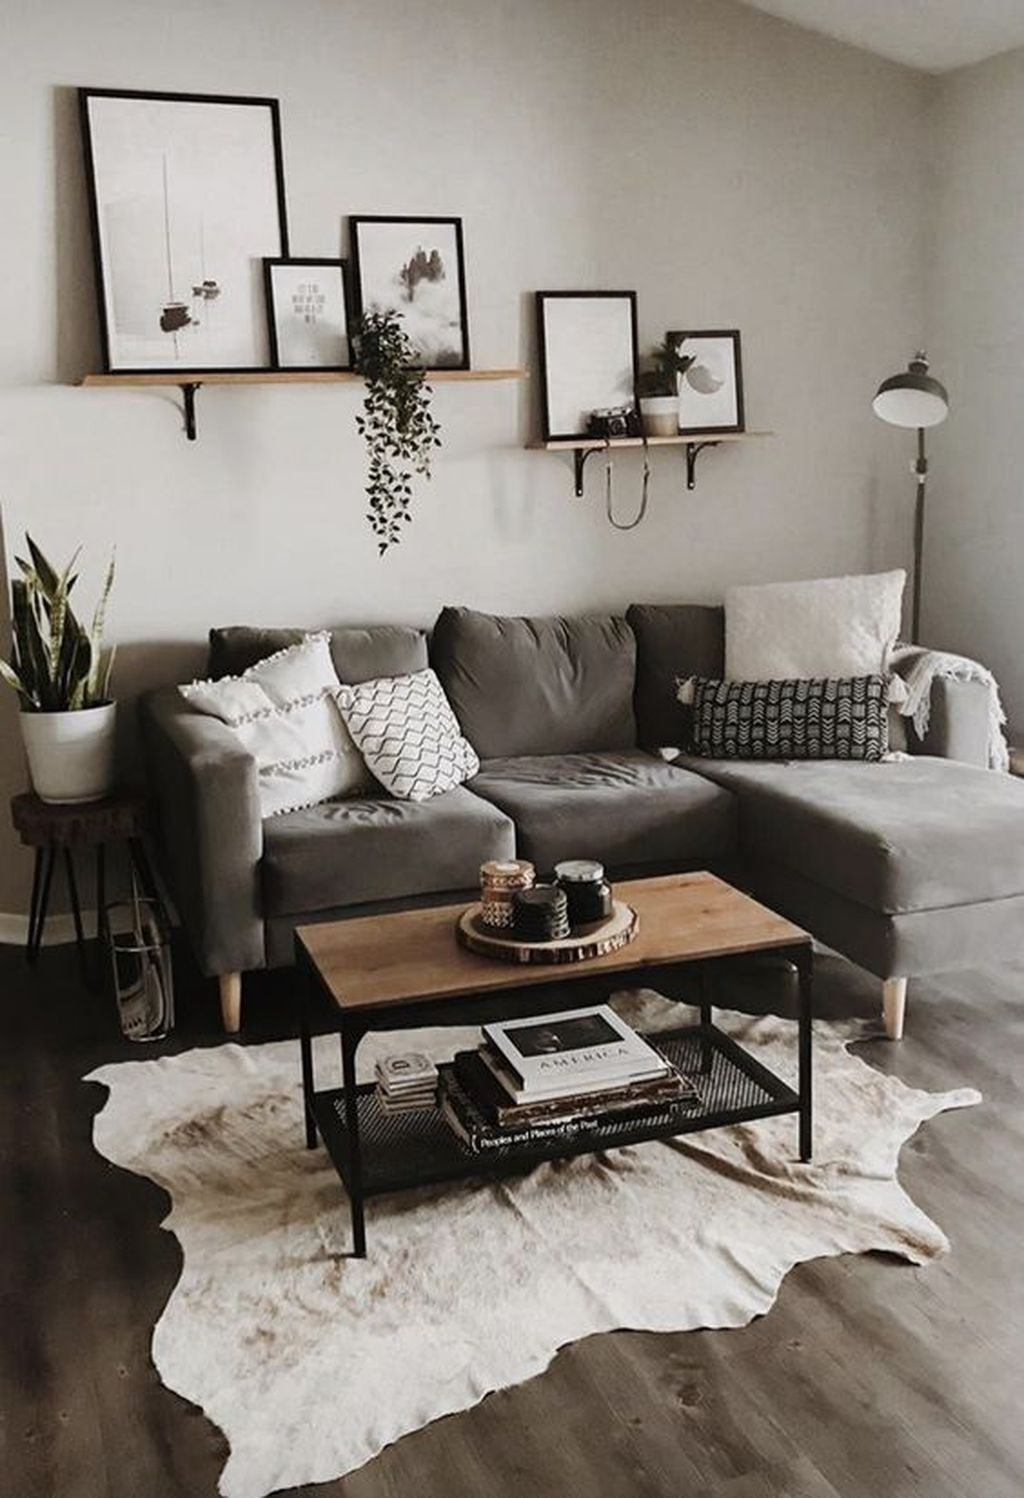 Perfect Apartment Living Room Decor Ideas On A Budget33